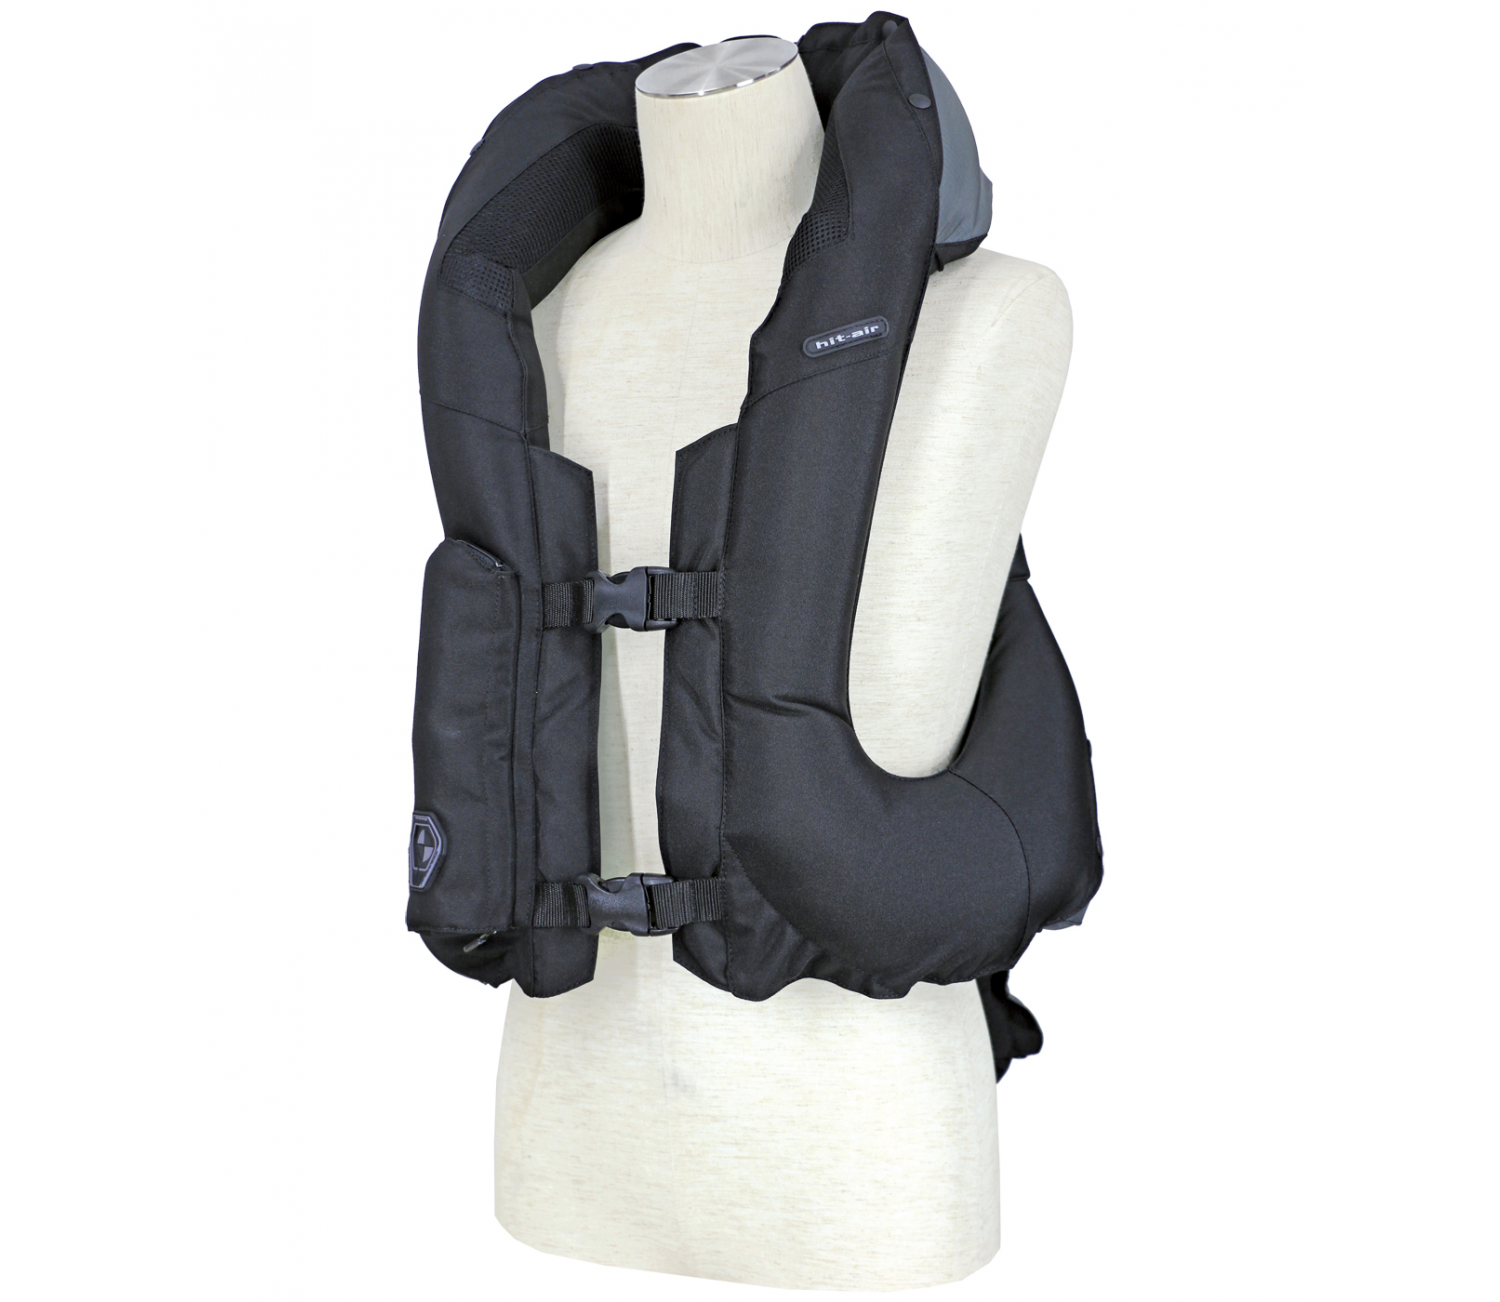 Hit Air – GILET AIRBAG COMPLET